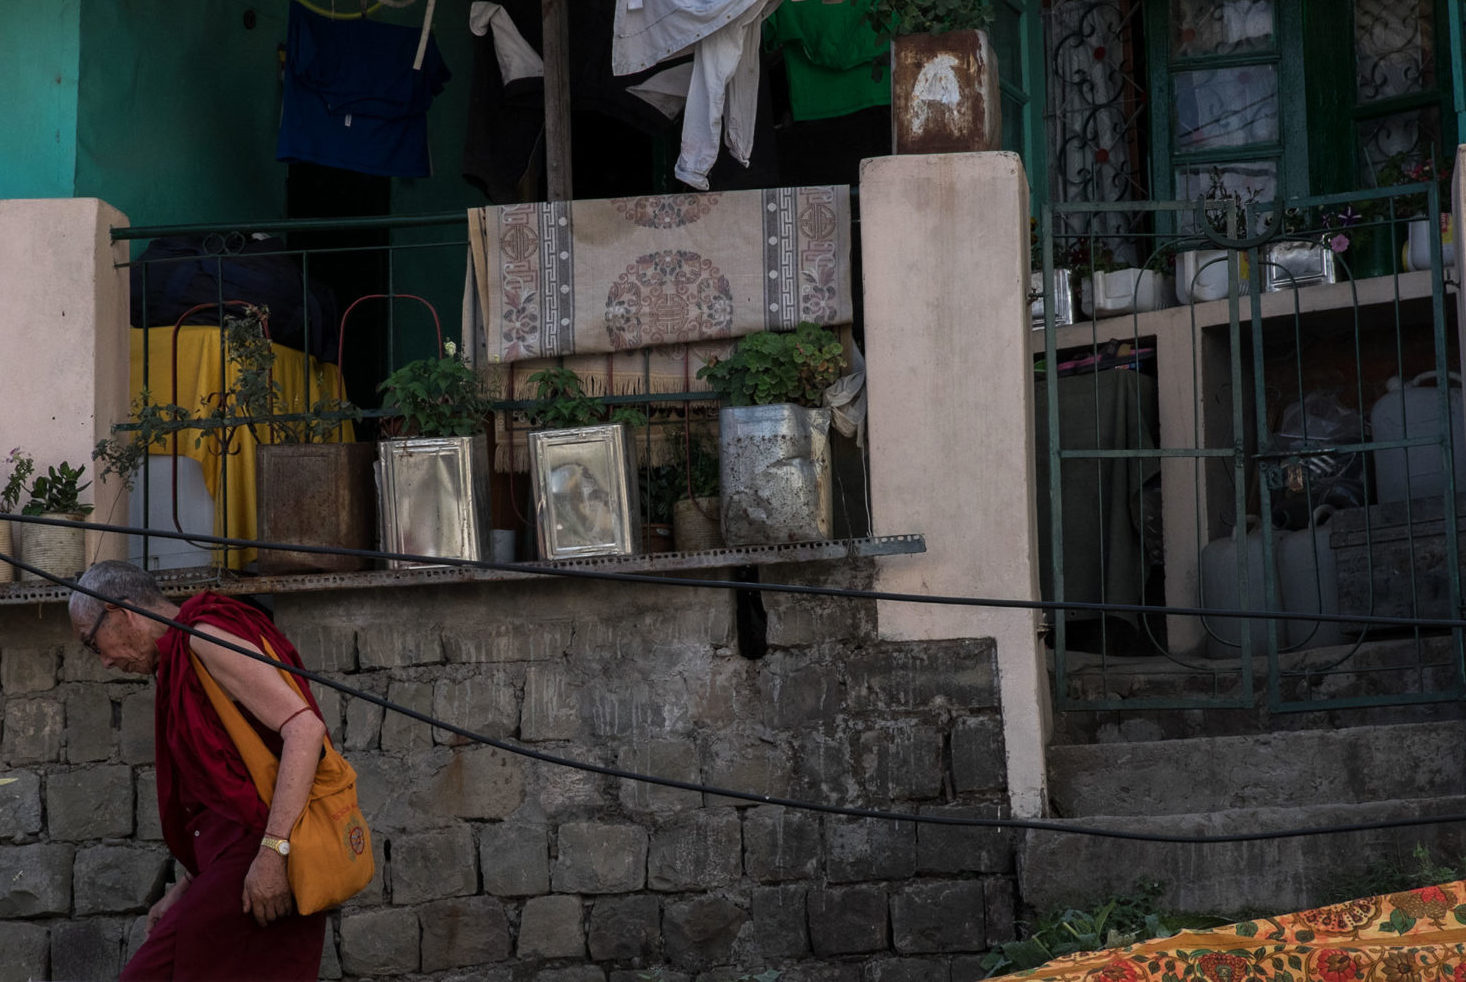 A monk leaves a friends house in Mcleod Ganj © Megan King